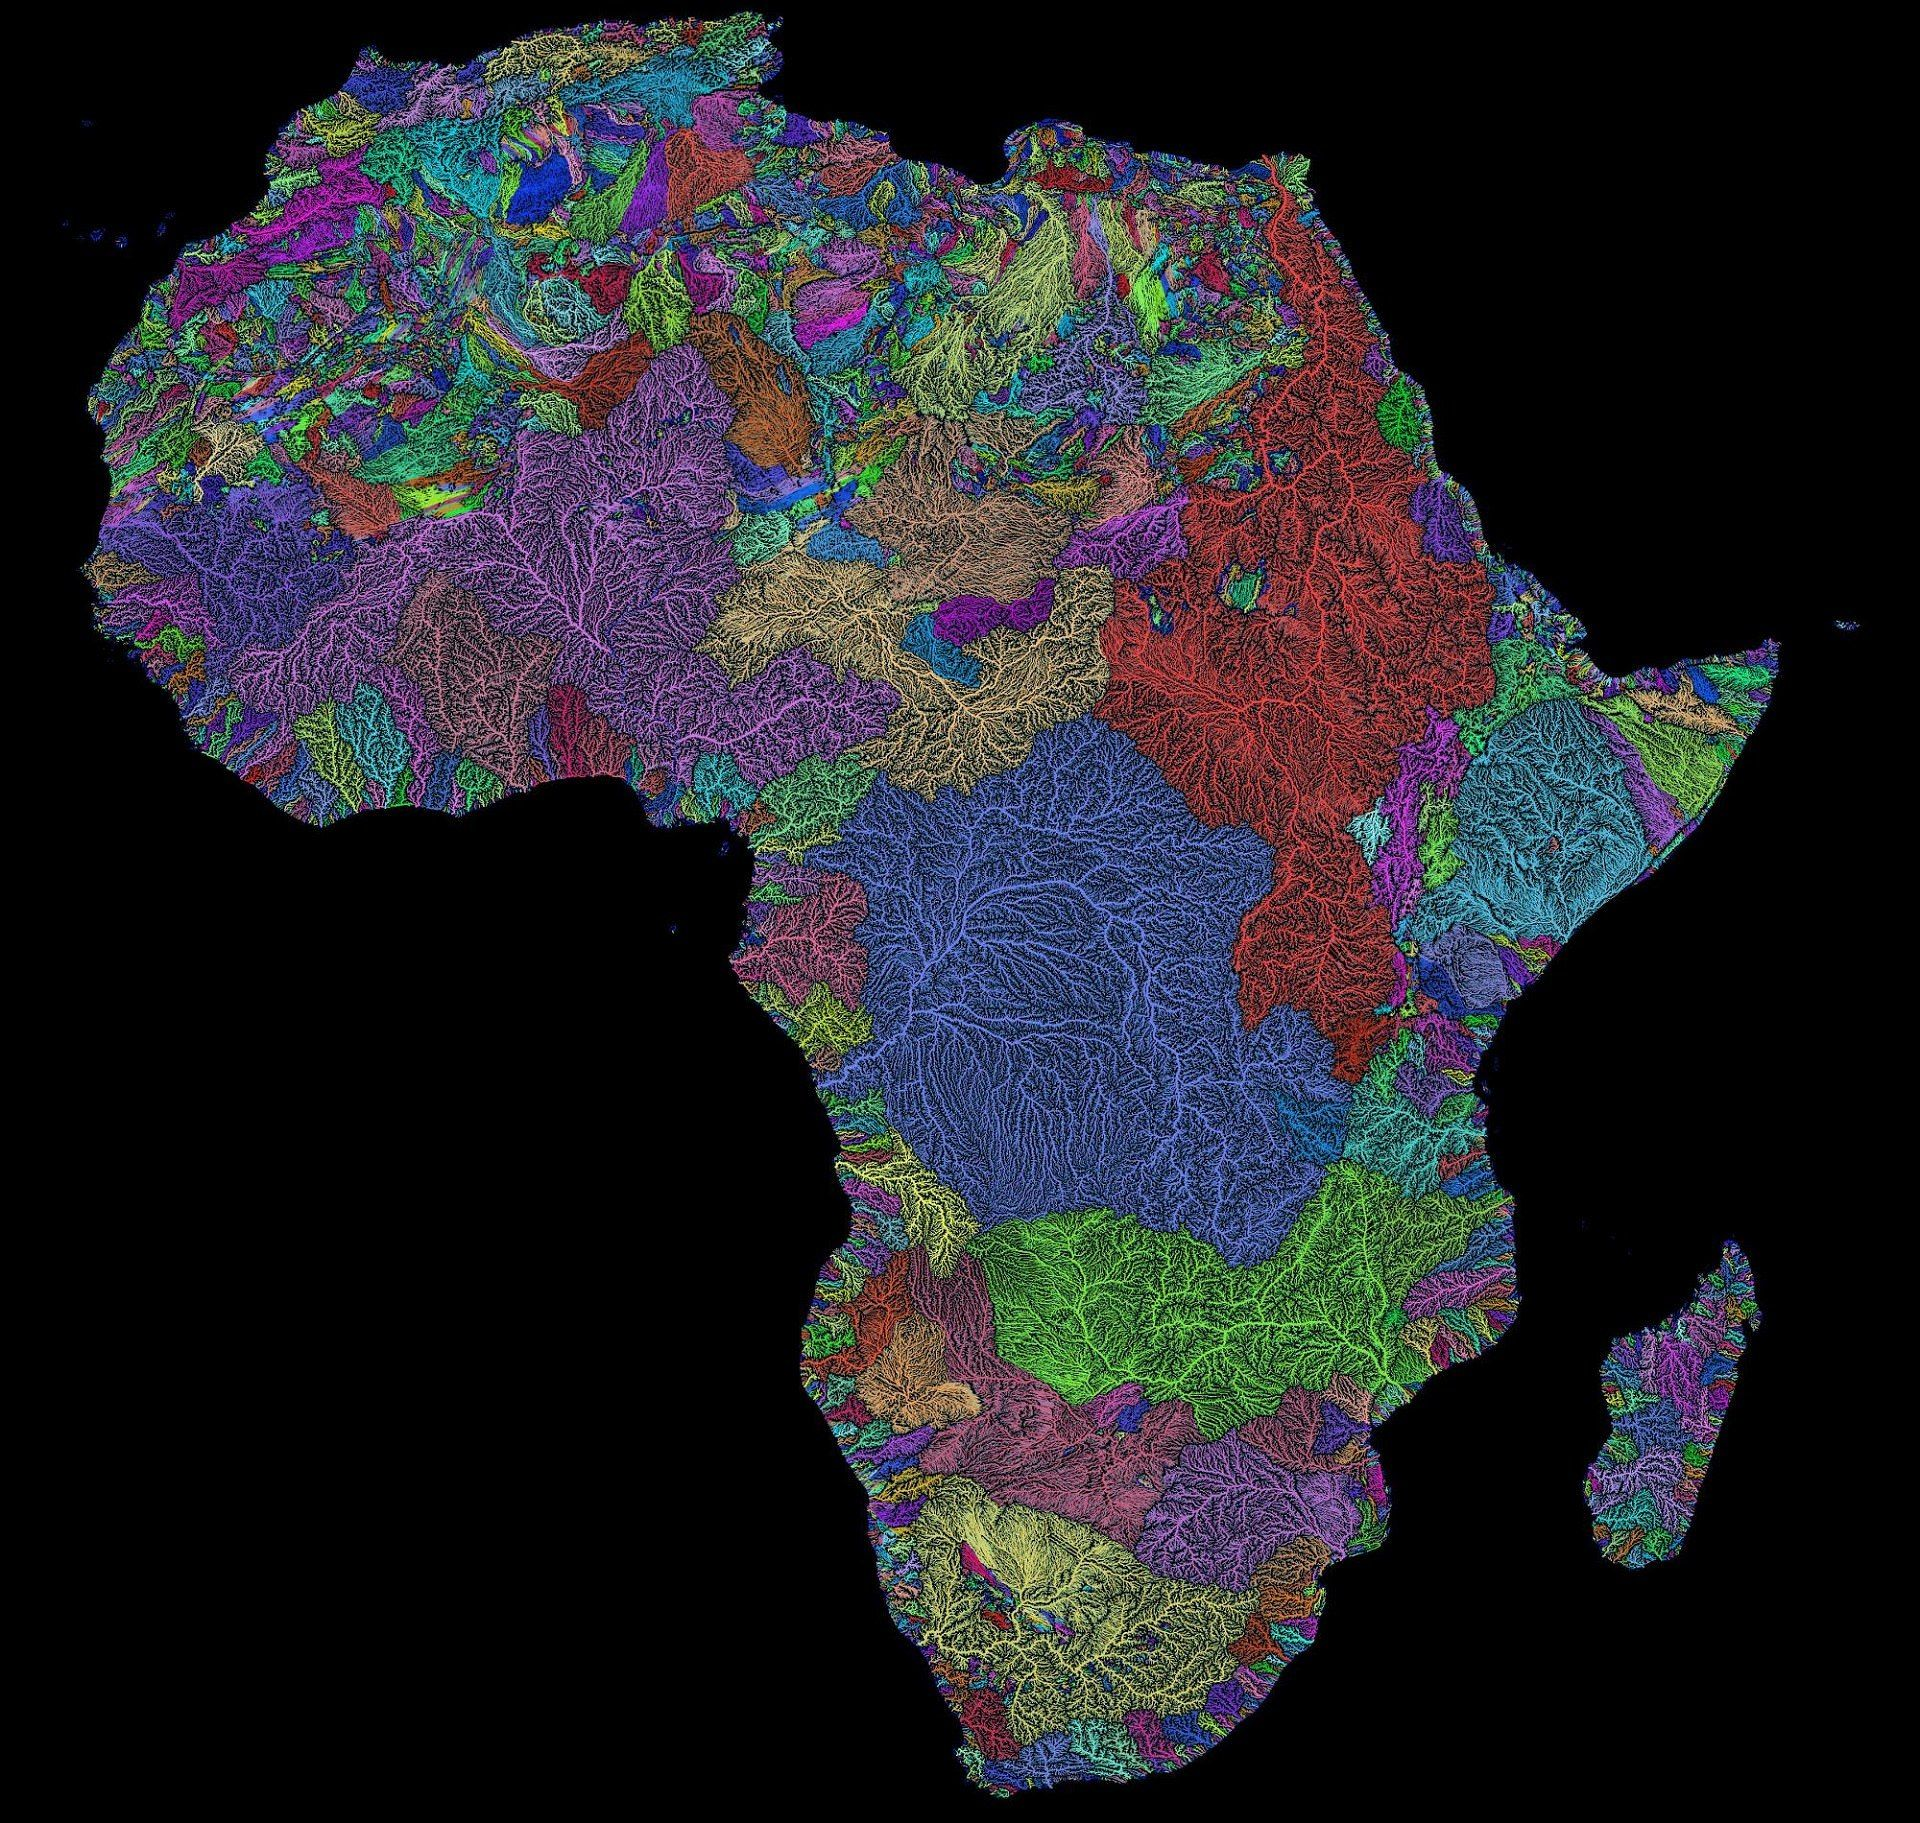 River Basins of Africa in Rainbow Colours